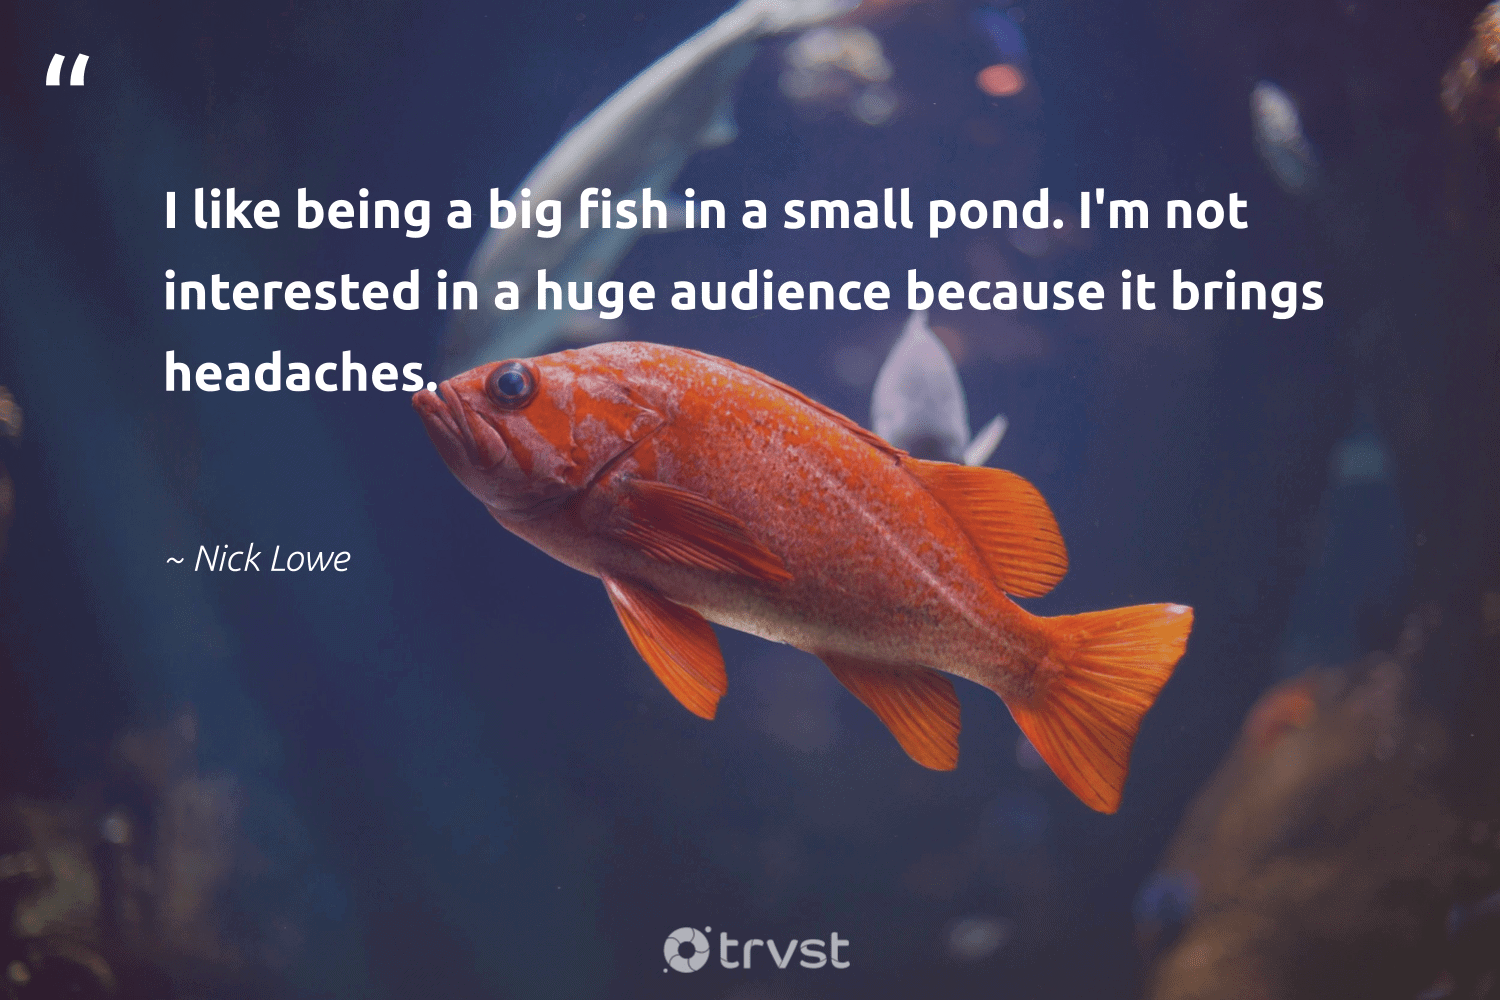 """""""I like being a big fish in a small pond. I'm not interested in a huge audience because it brings headaches.""""  - Nick Lowe #trvst #quotes #fish #savetheoceans #impact #conservation #dogood #protectnature #beinspired #biodiversity #ecoconscious #oceanlove"""